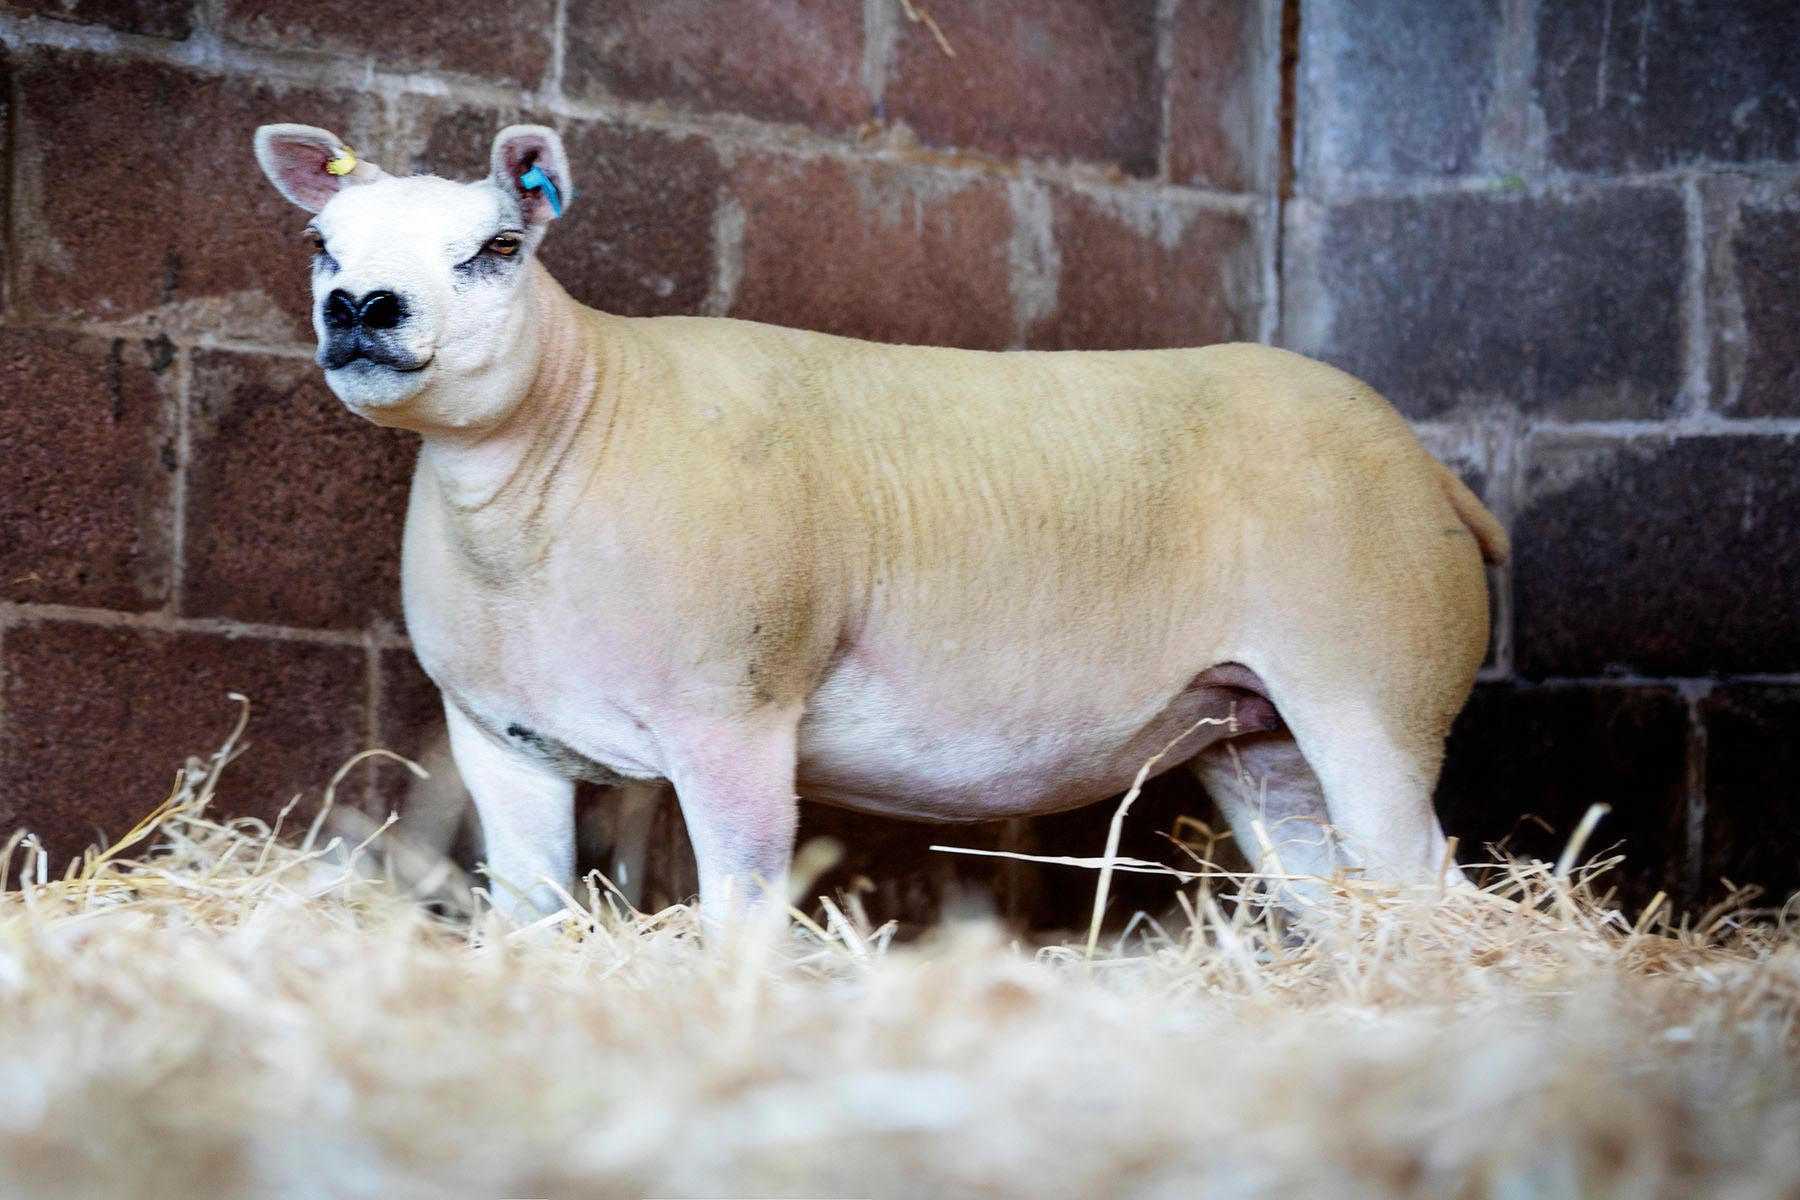 Summer Sensation online Texel female sale peaks at £6,000